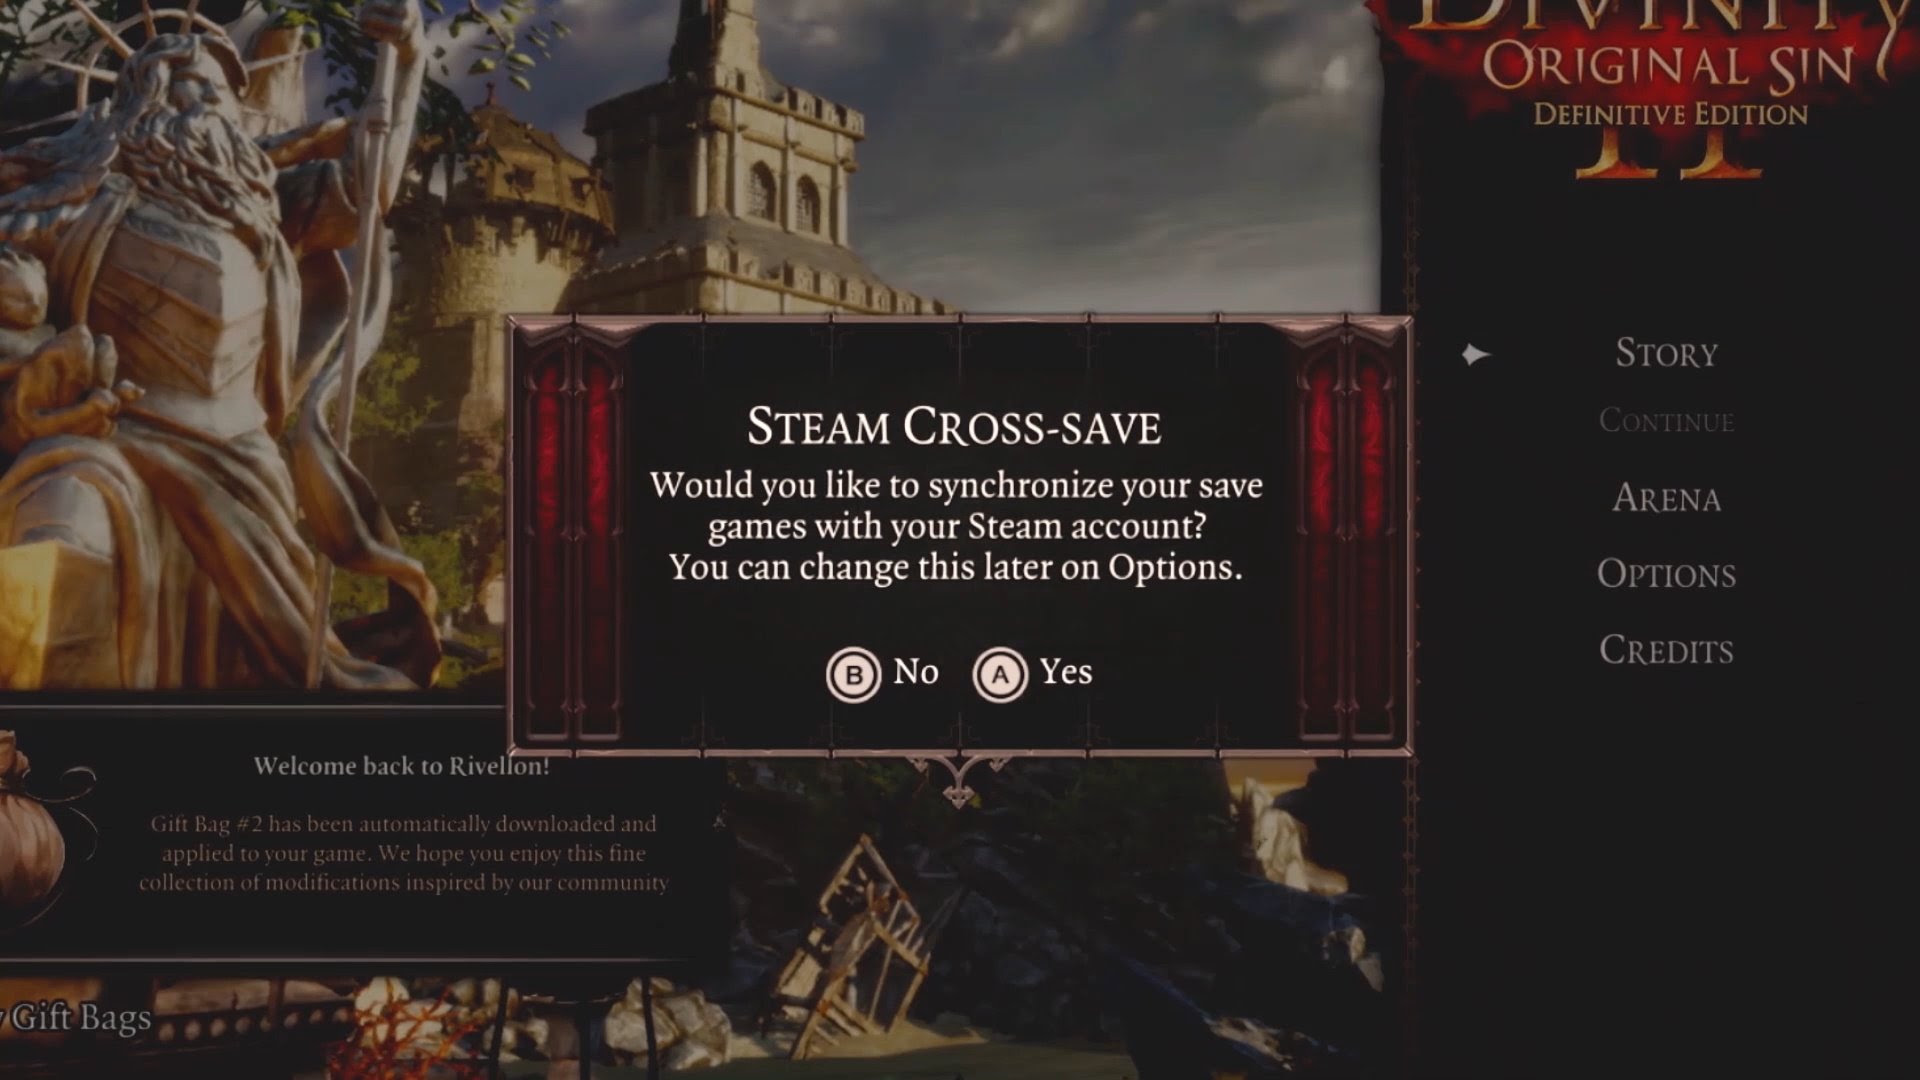 Divinity Original Sin 2 Definitive Edition Review Switch